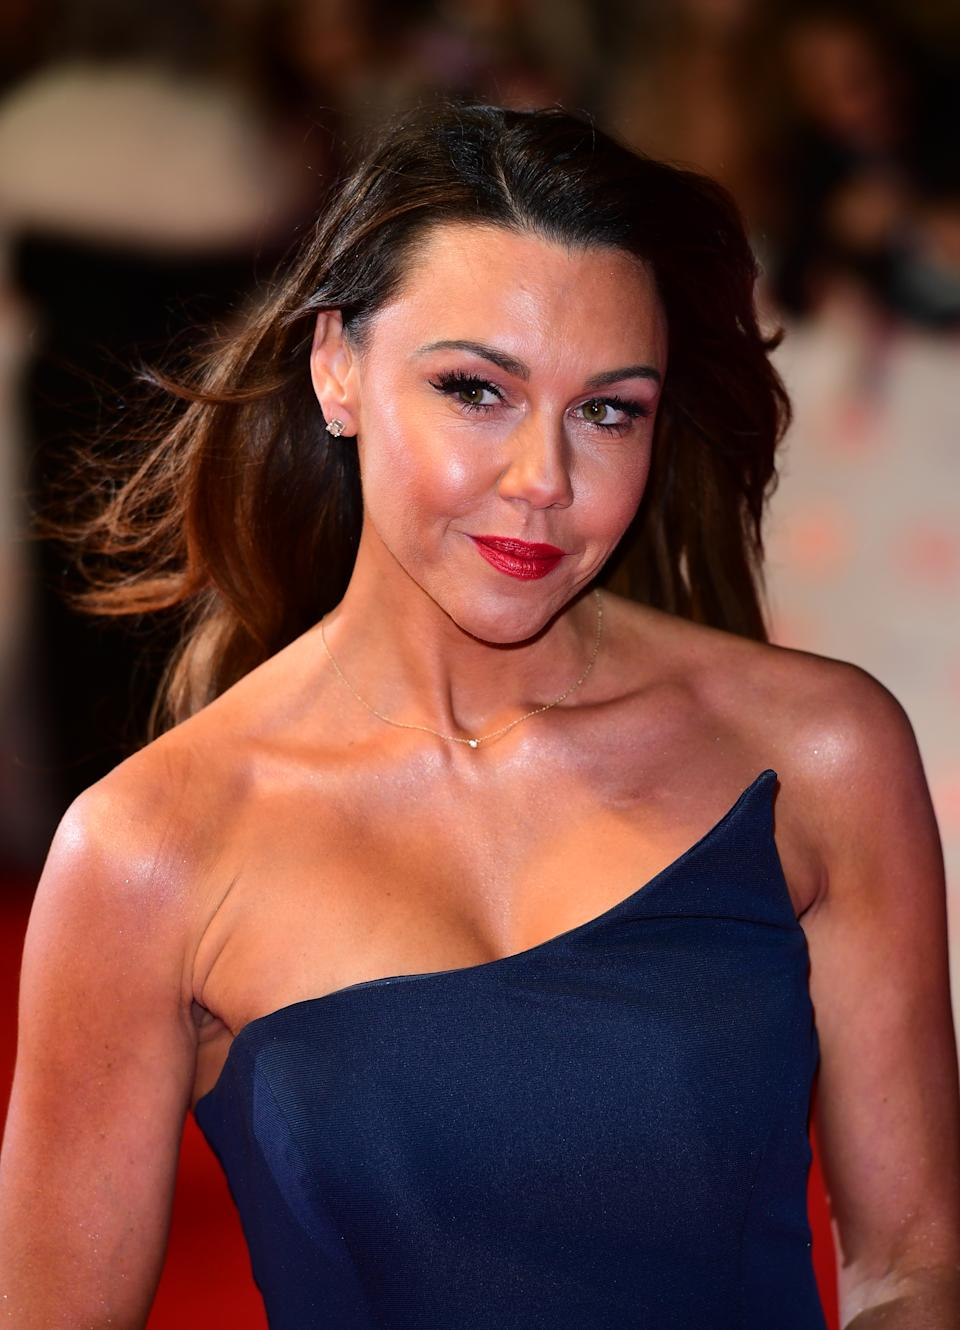 Michelle Heaton opens up about her struggle after double mastectomy